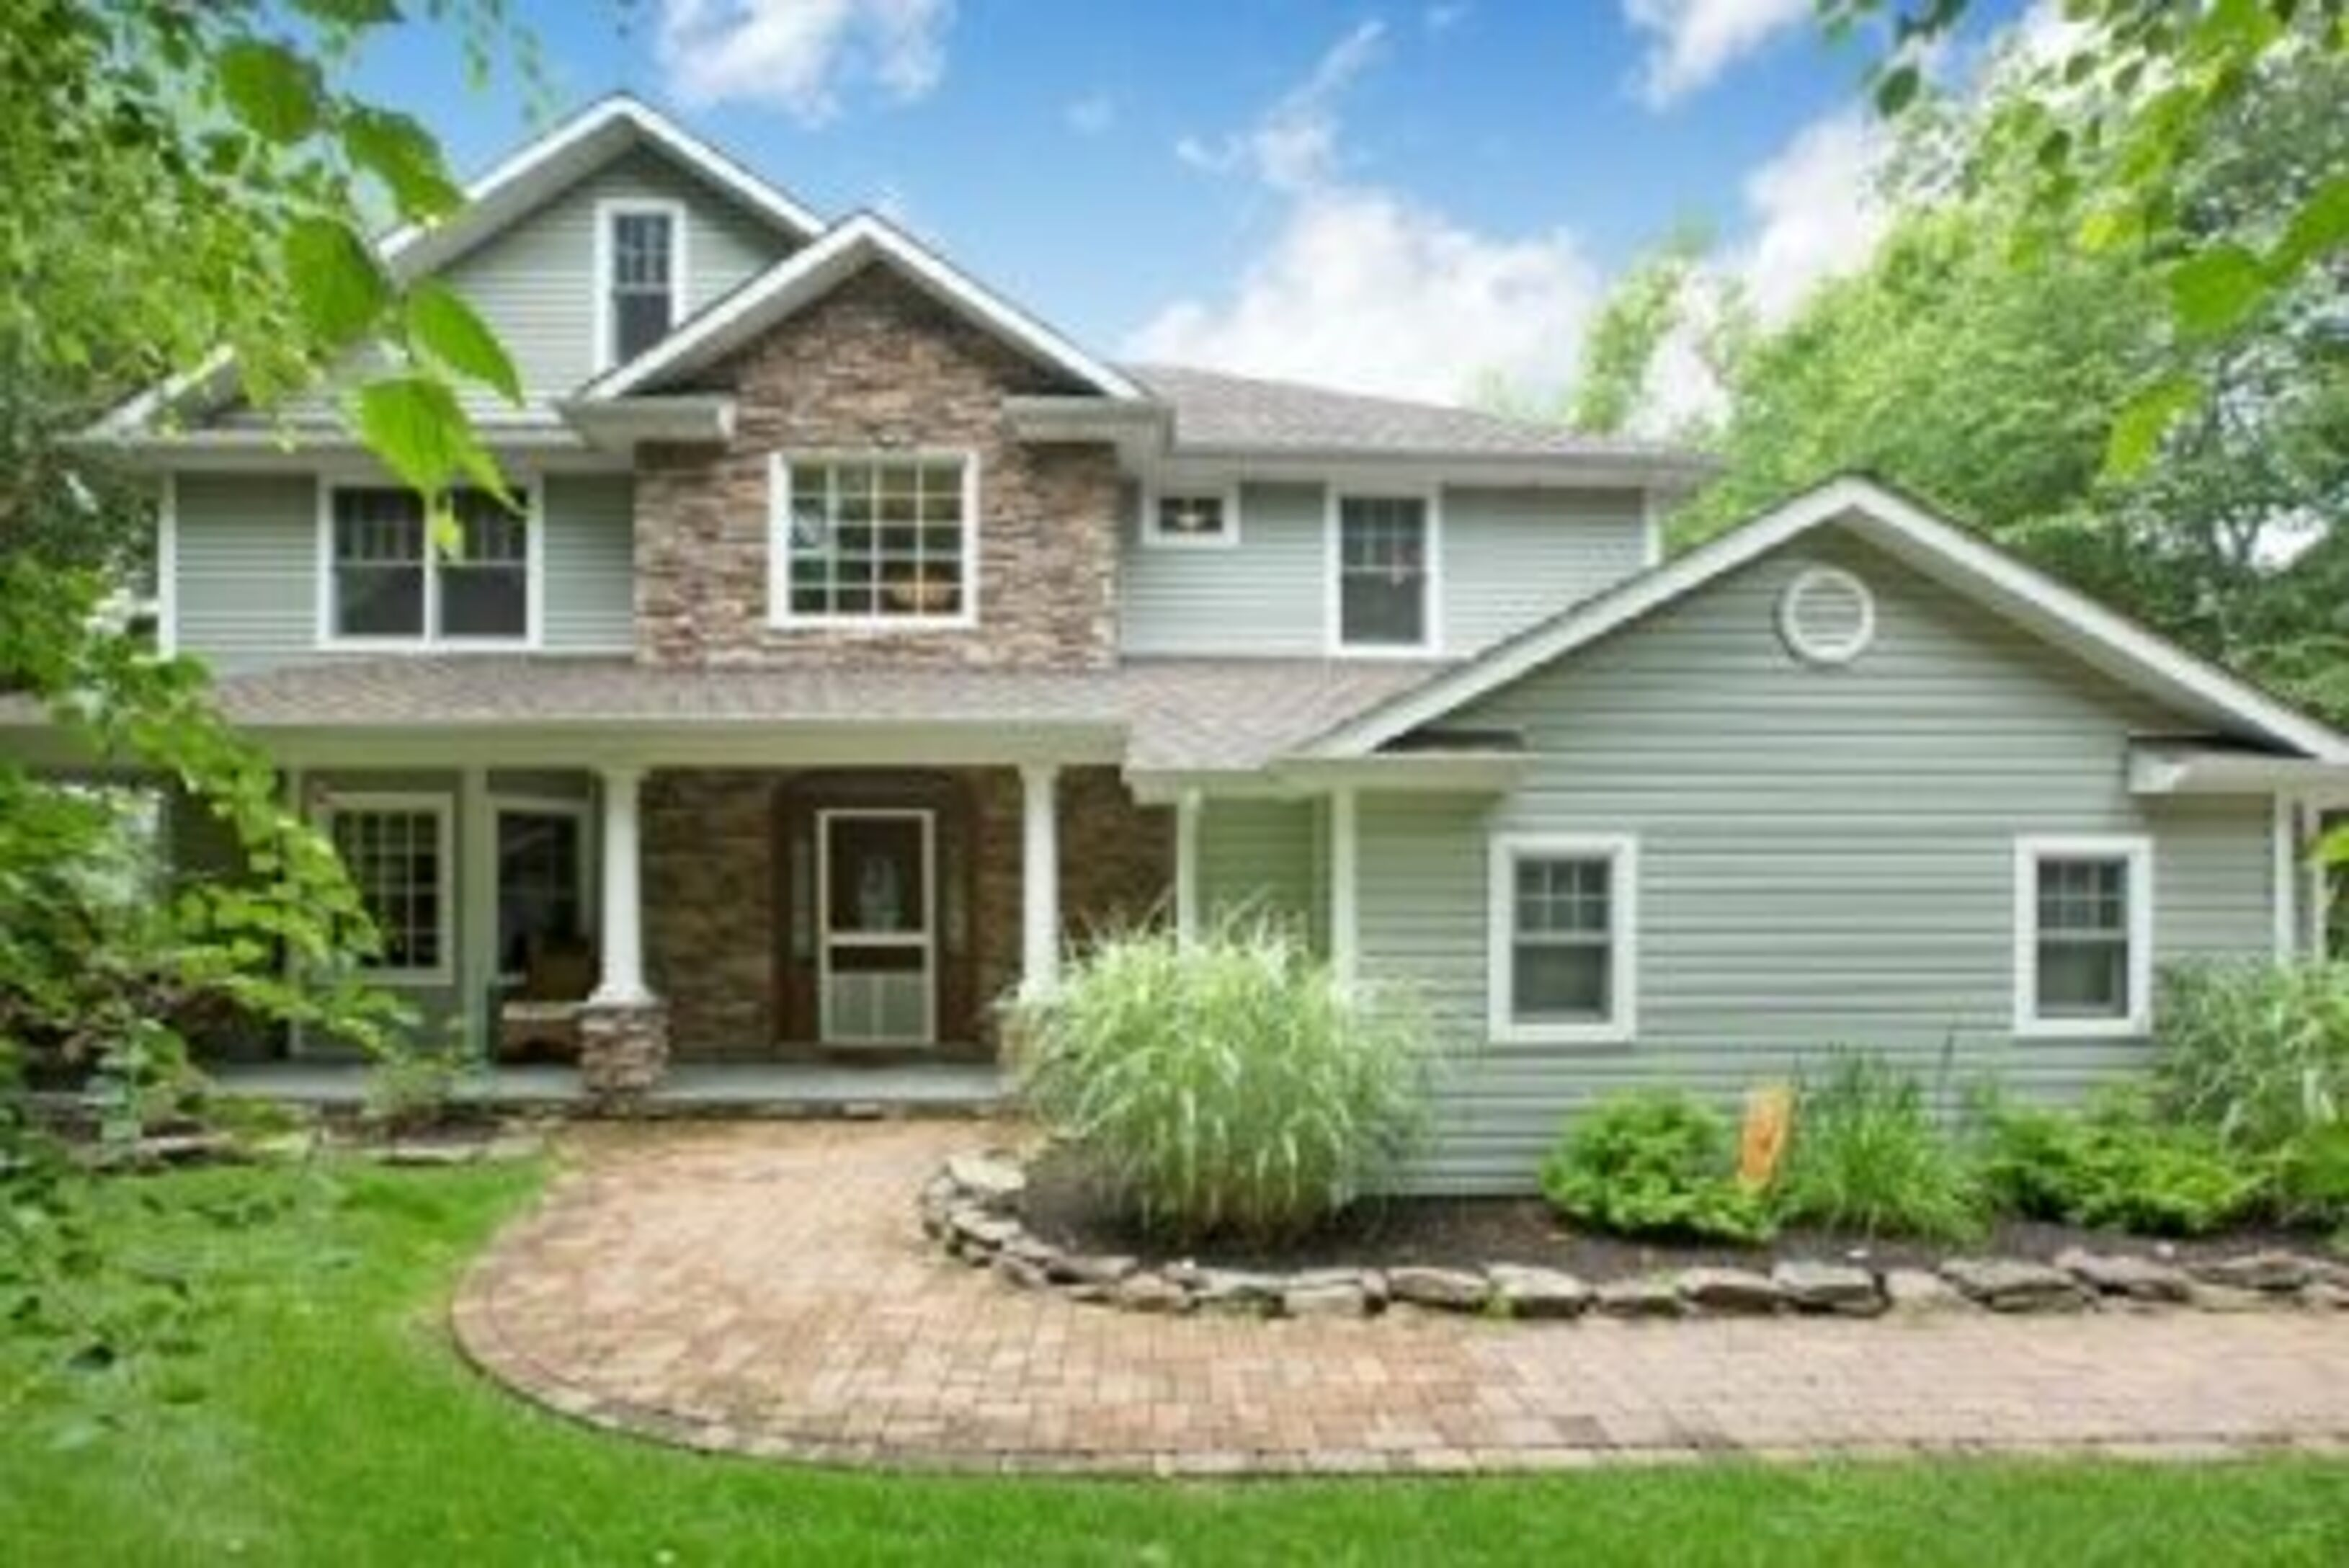 40 Woodland Dr - North Haven, New York